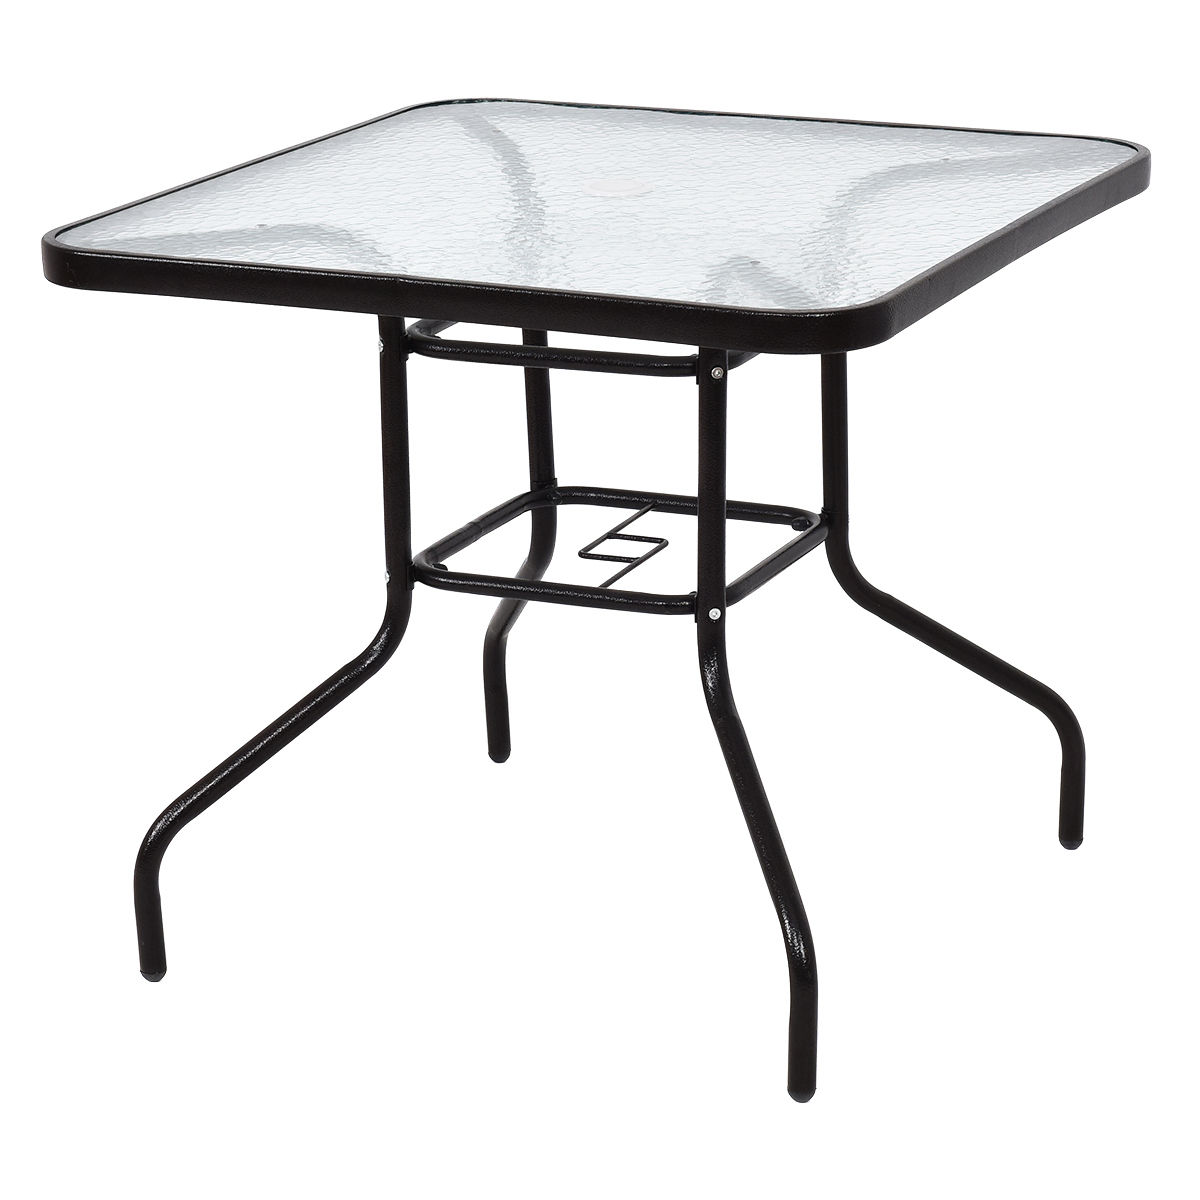 Costway 32 Patio Square Table Steel Frame Dining Table Patio